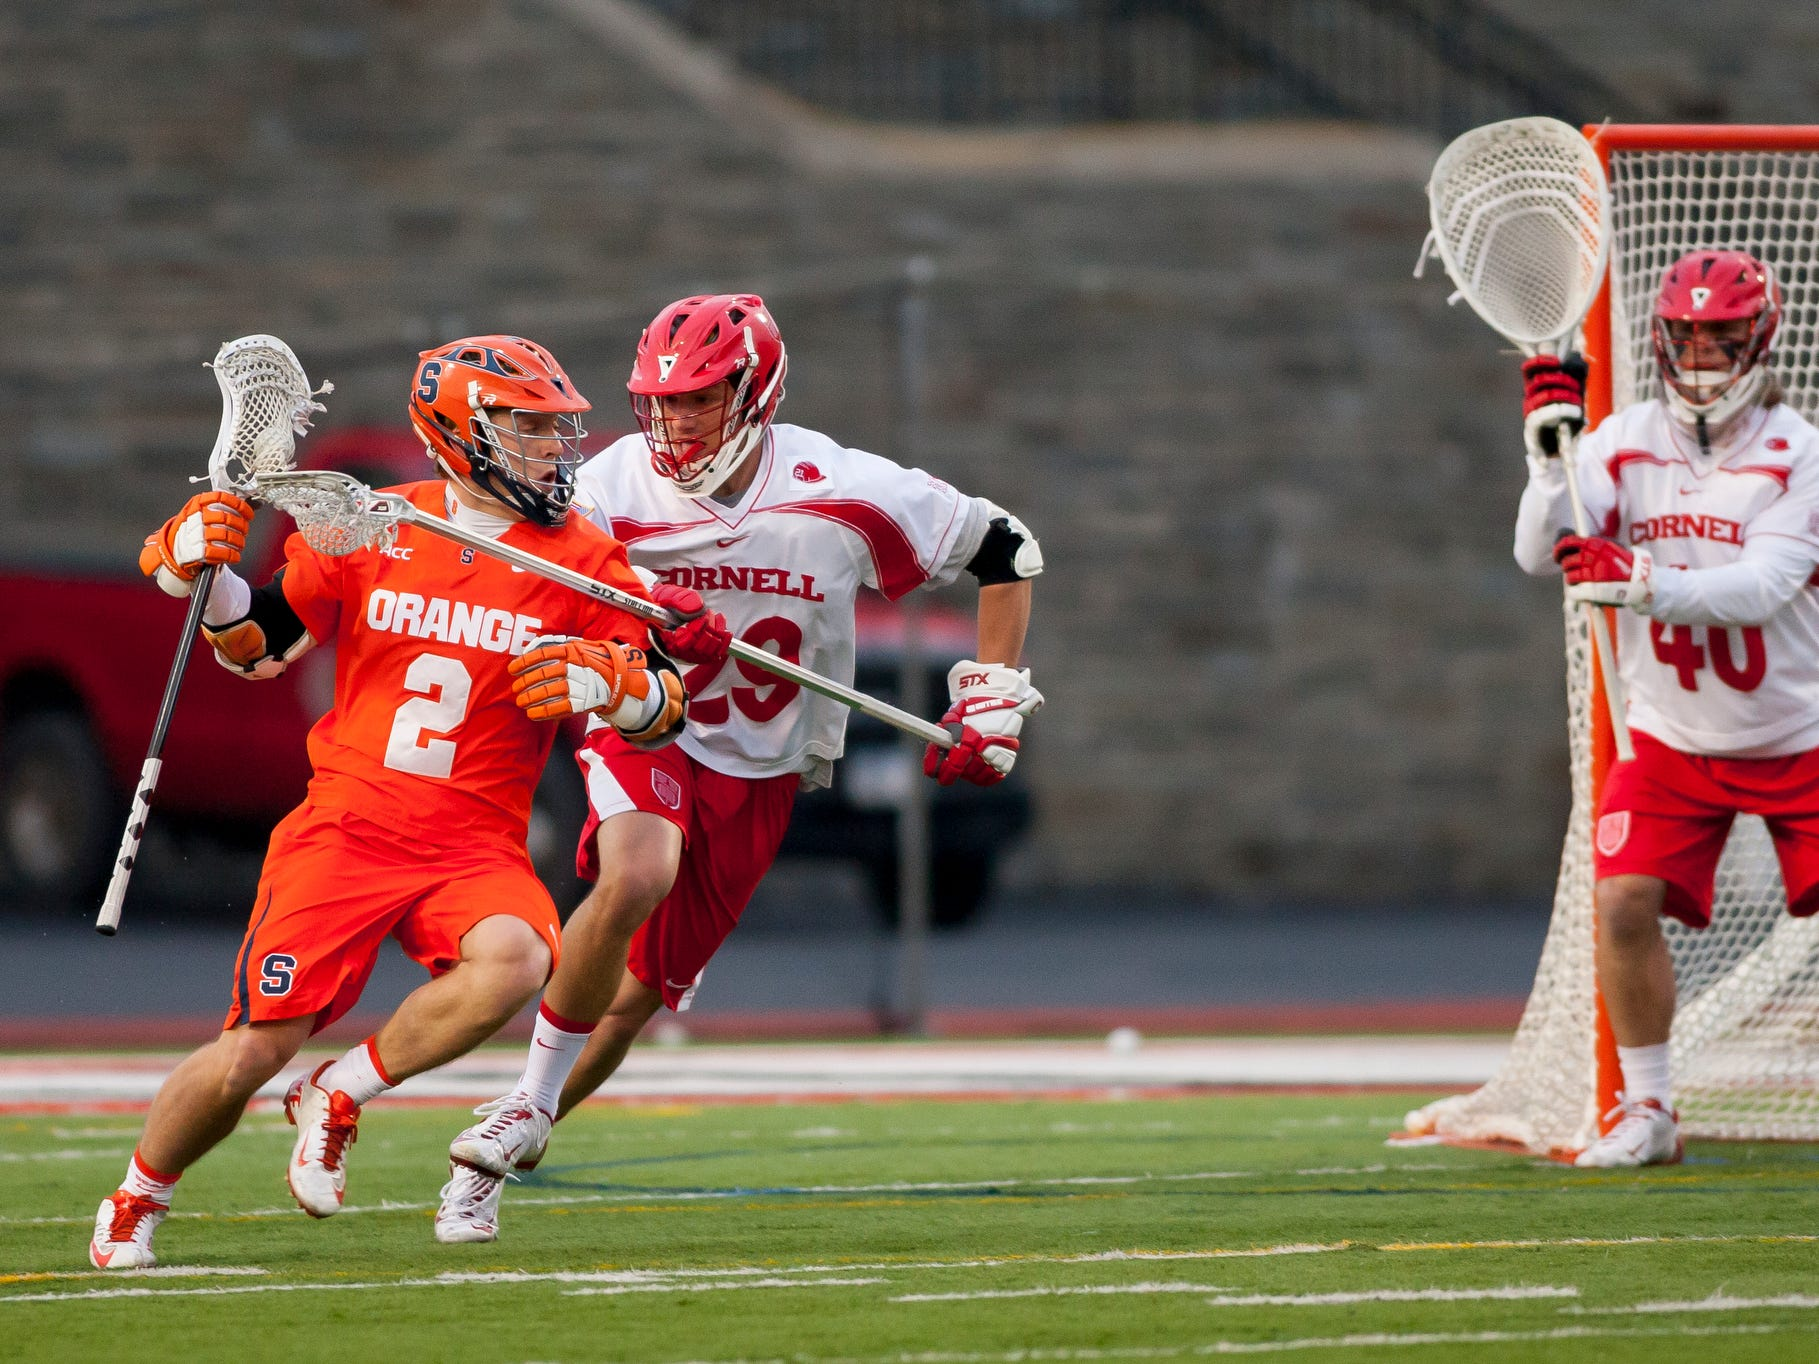 2014: Syracuse defeated Cornell in mens lacrosse 14-9 Tuesday evening at Schoellkopf Field on the Cornell University campus in Ithaca.